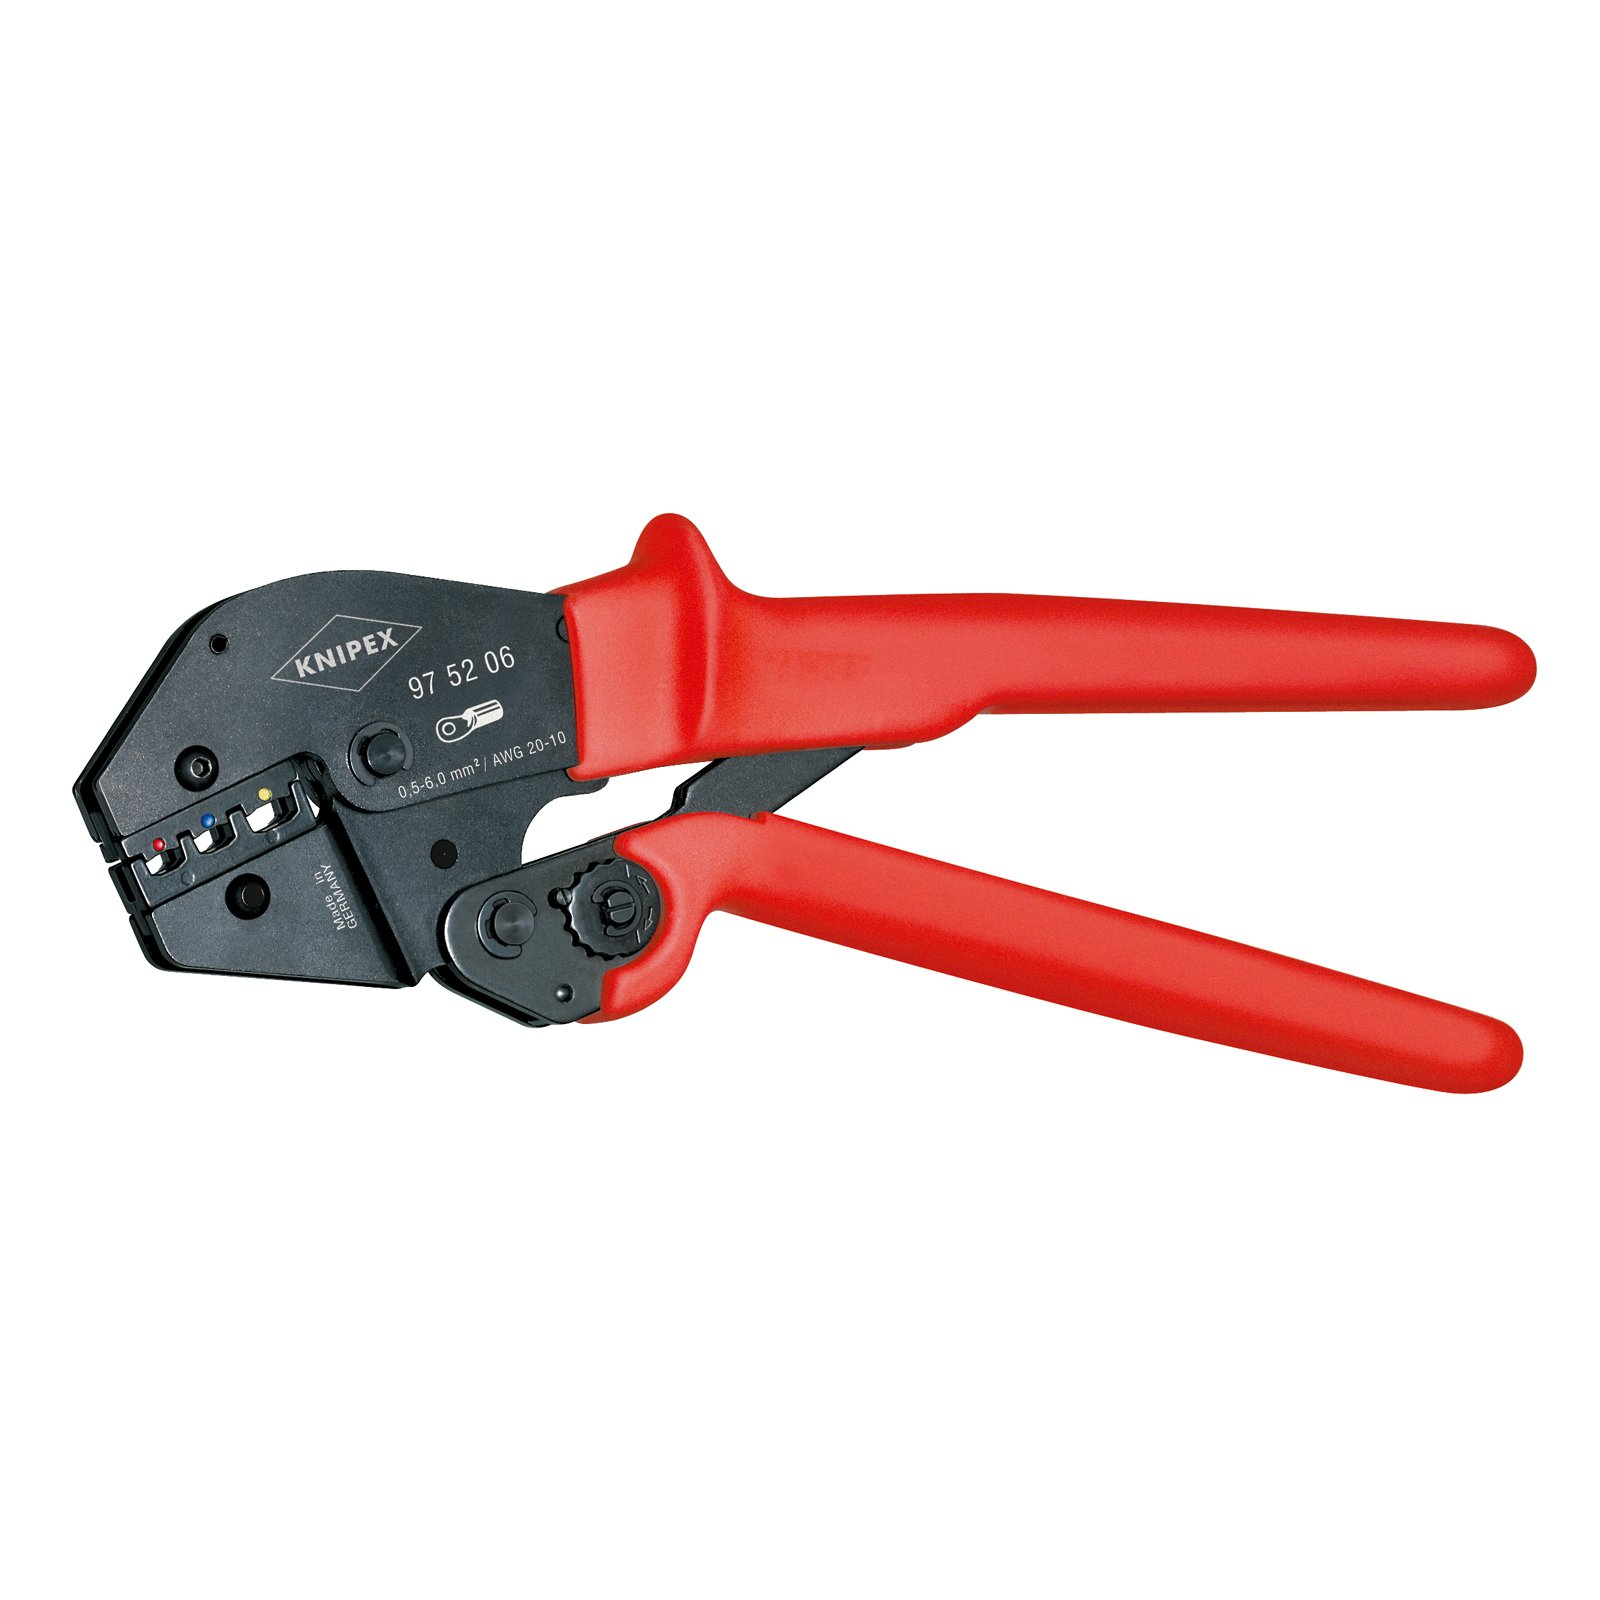 Knipex 97 52 06 0,5-6mm Crimping Pliers for insulated terminals